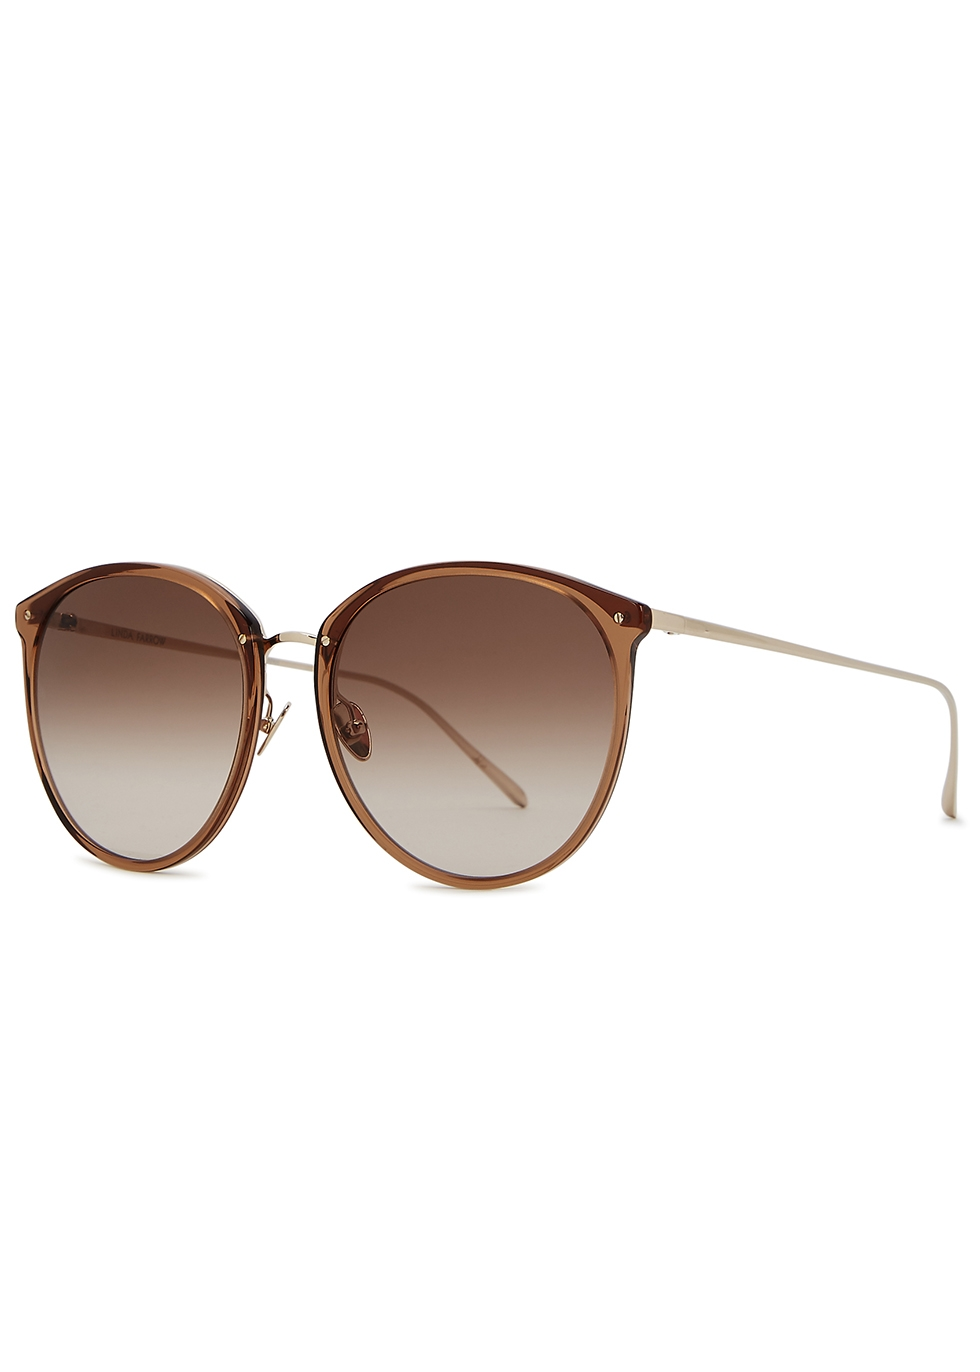 Kings gold-plated oversized sunglasses